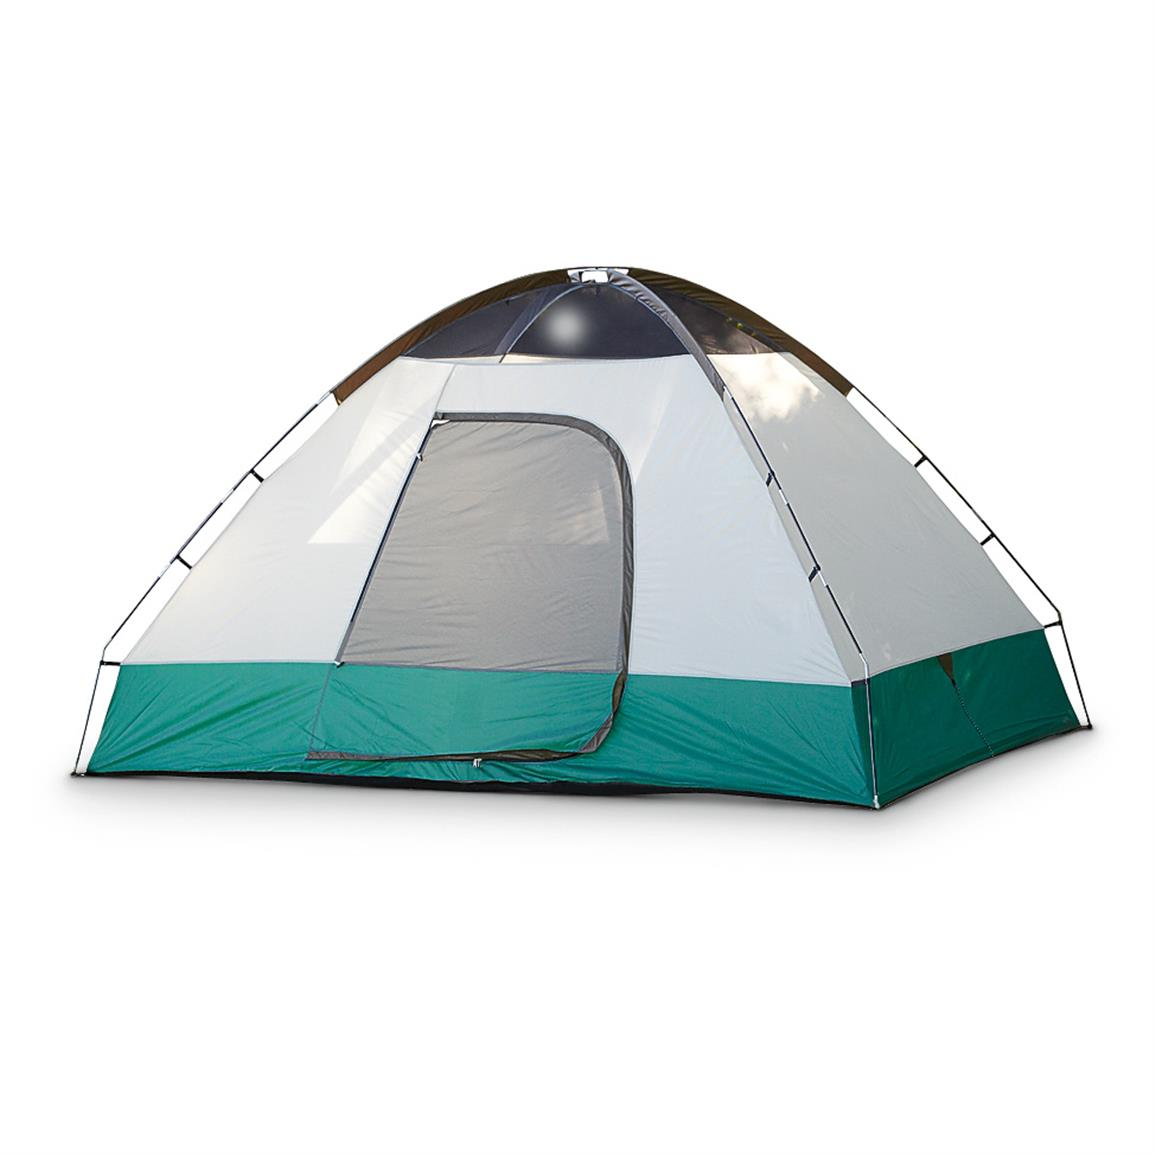 Guide Gear Compass 5 Person Dome Tent, 11' x 9', Without Rainfly